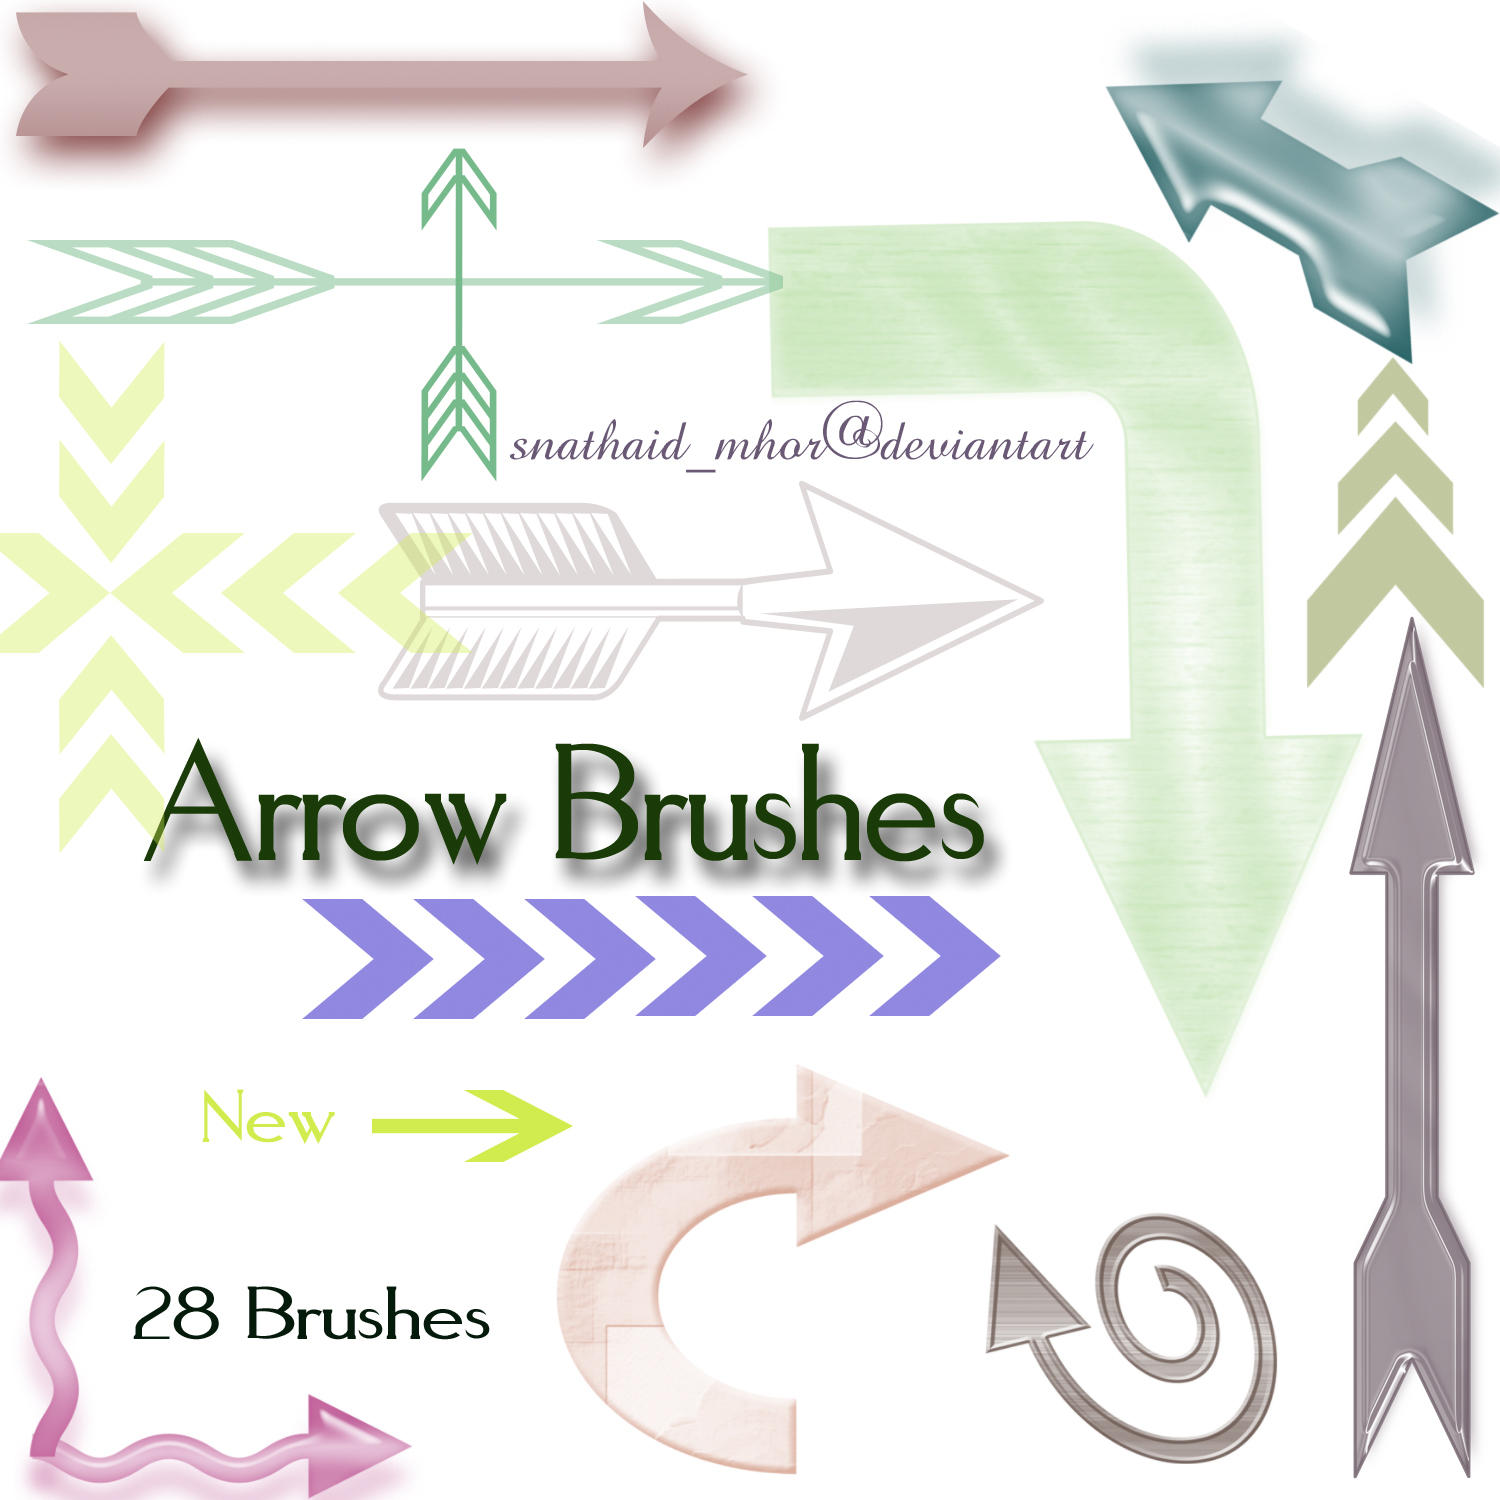 Arrow brushes by snathaid mhor on deviantart arrow brushes by snathaid mhor arrow brushes by snathaid mhor ccuart Choice Image